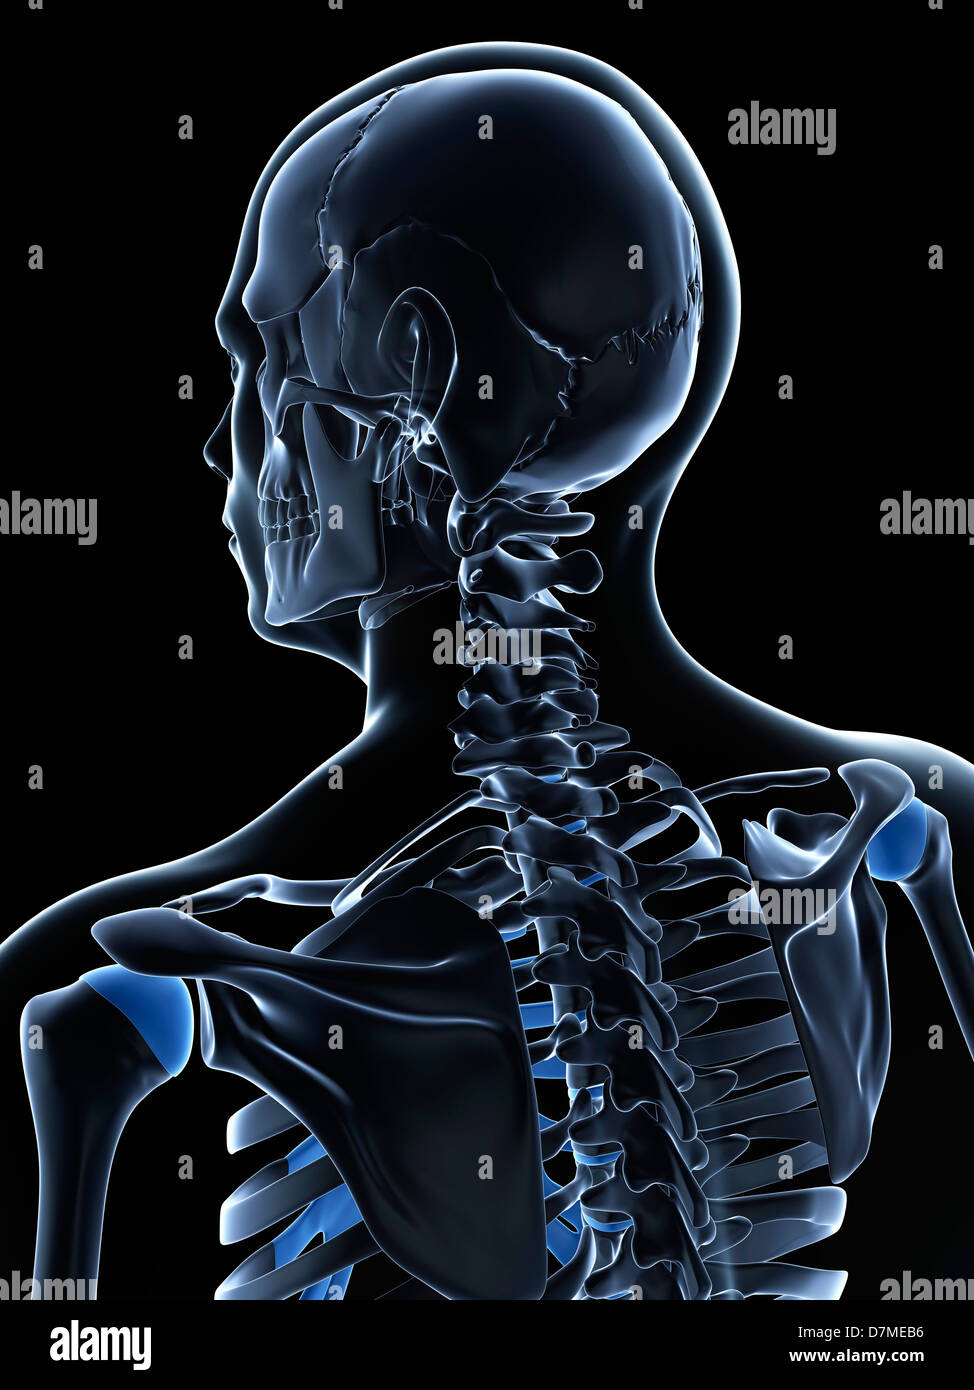 Illustration Male Shoulder Neck Anatomy Stock Photos & Illustration ...